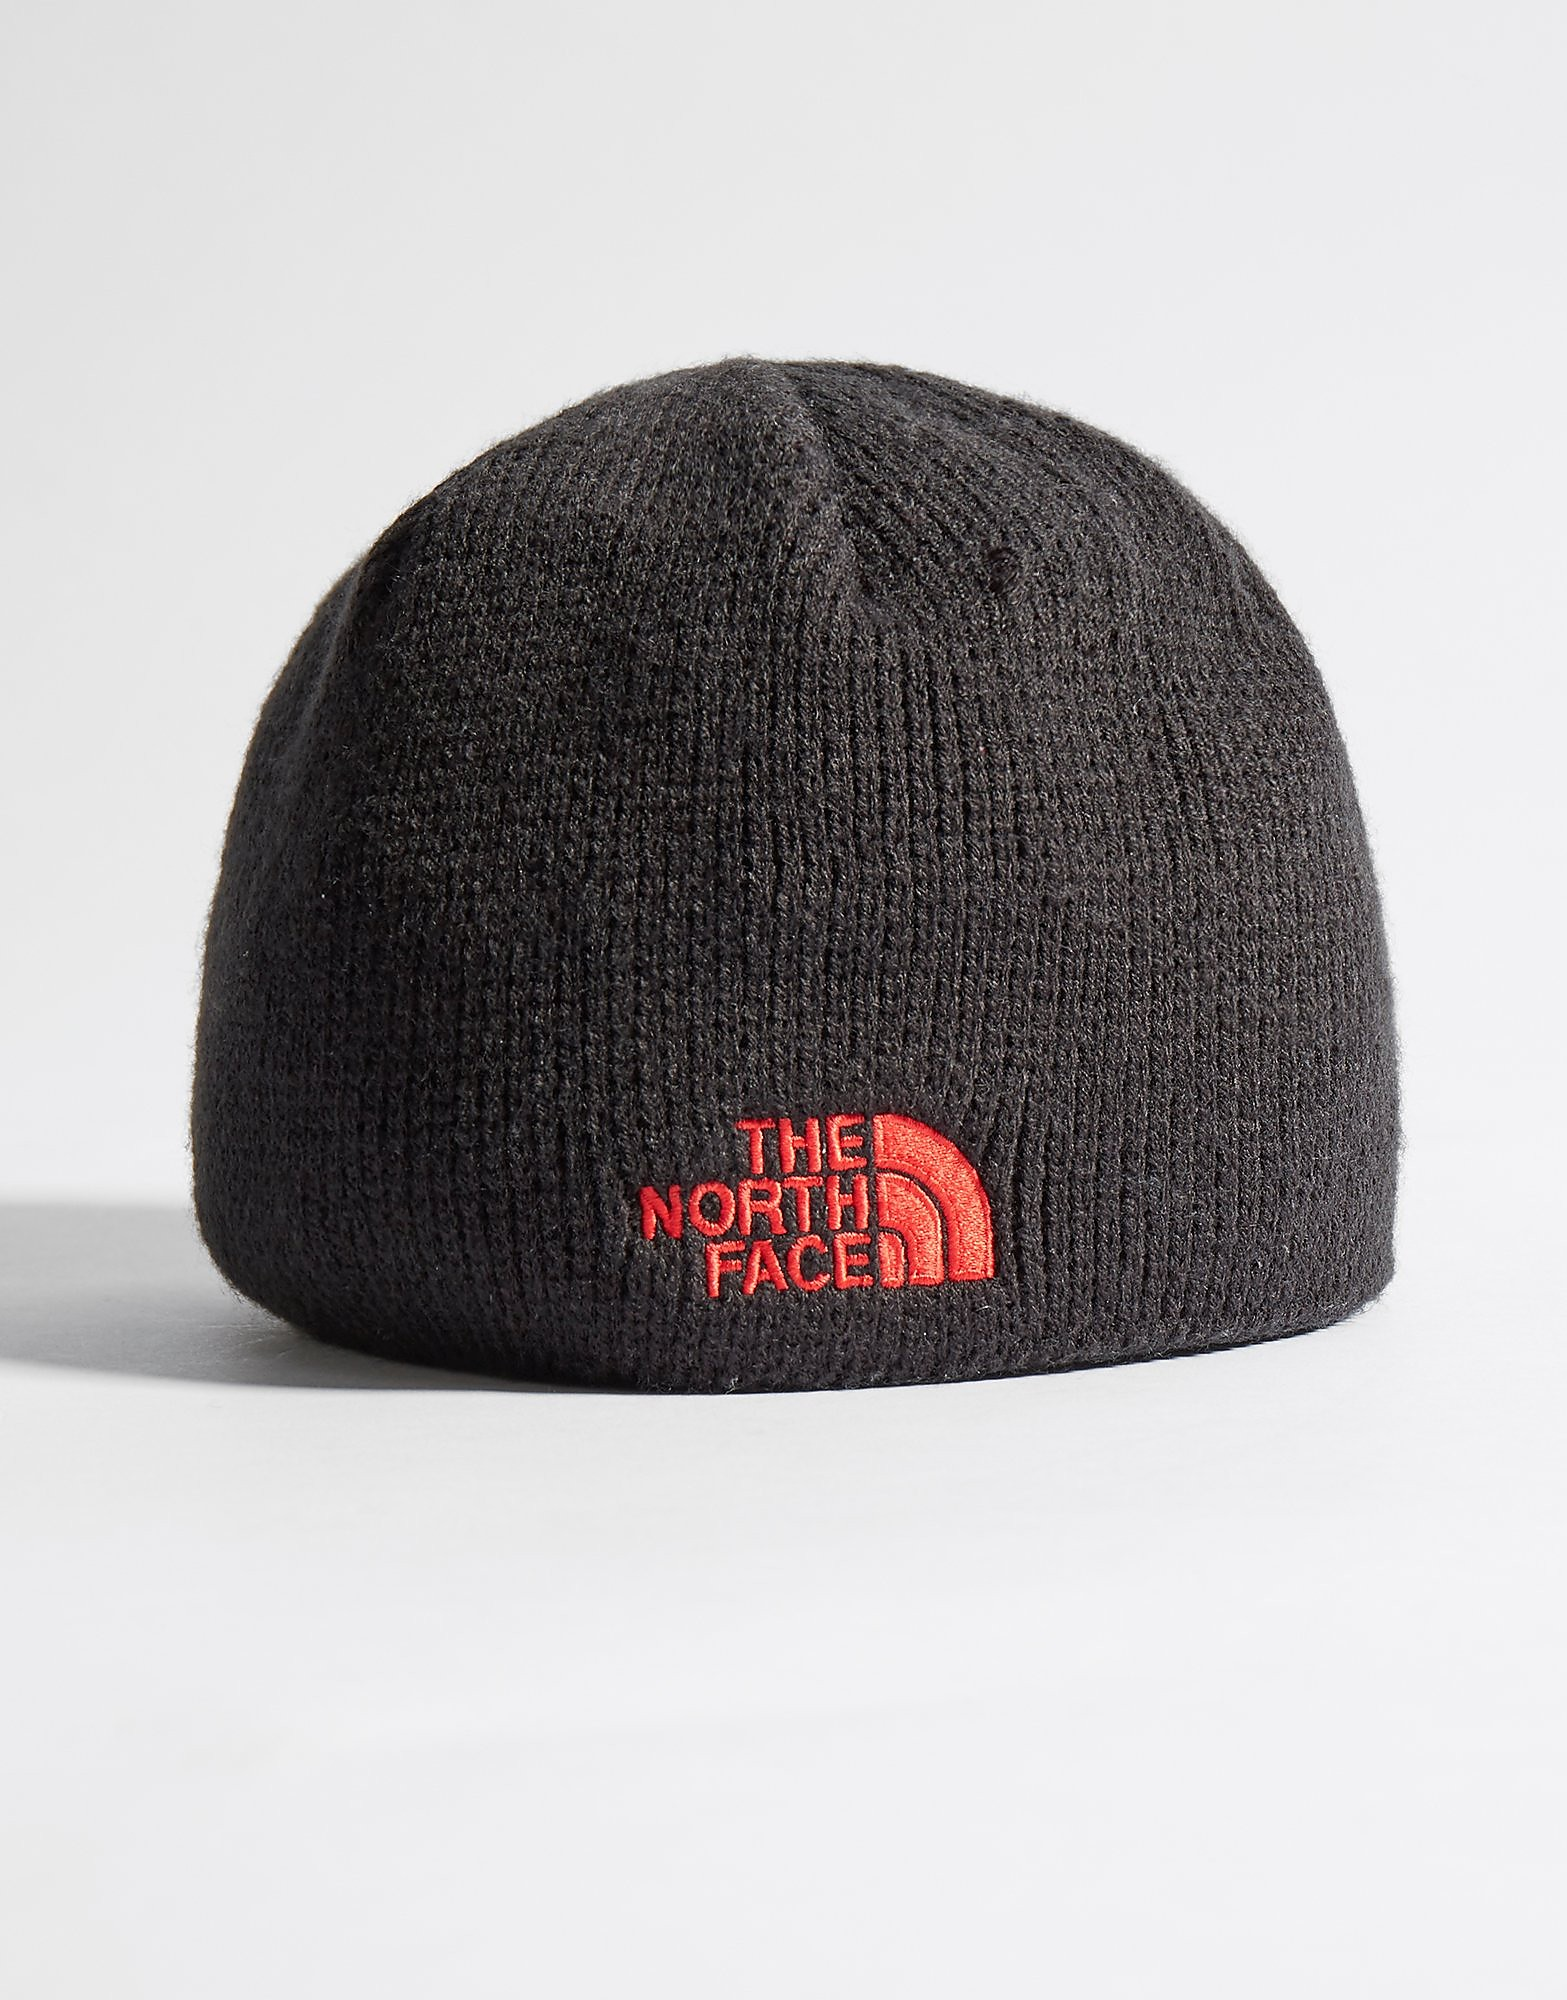 The North Face Bones beanie-hat